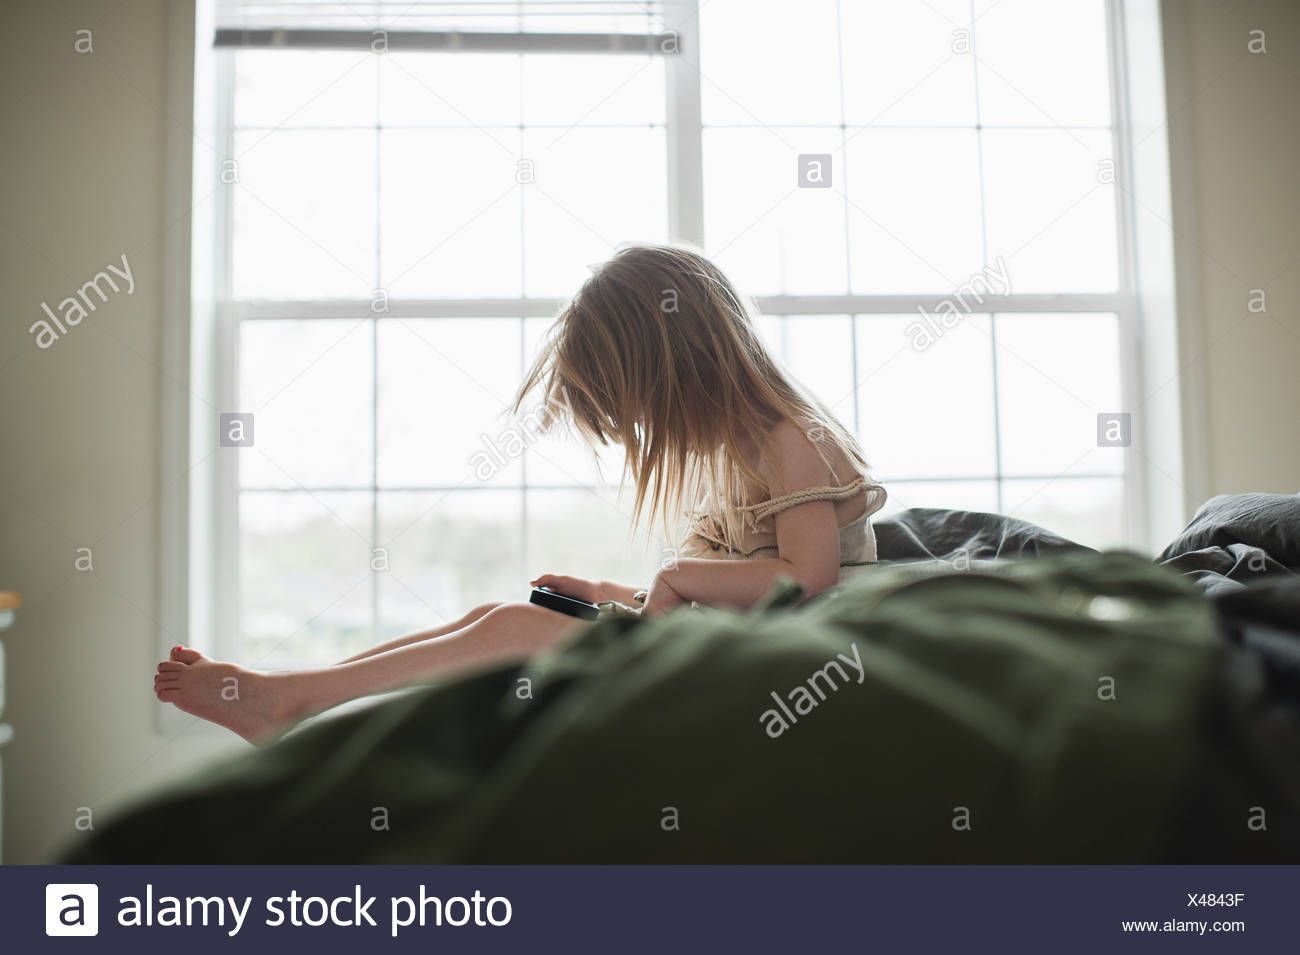 Girl sitting on bed using smartphone - Stock Image